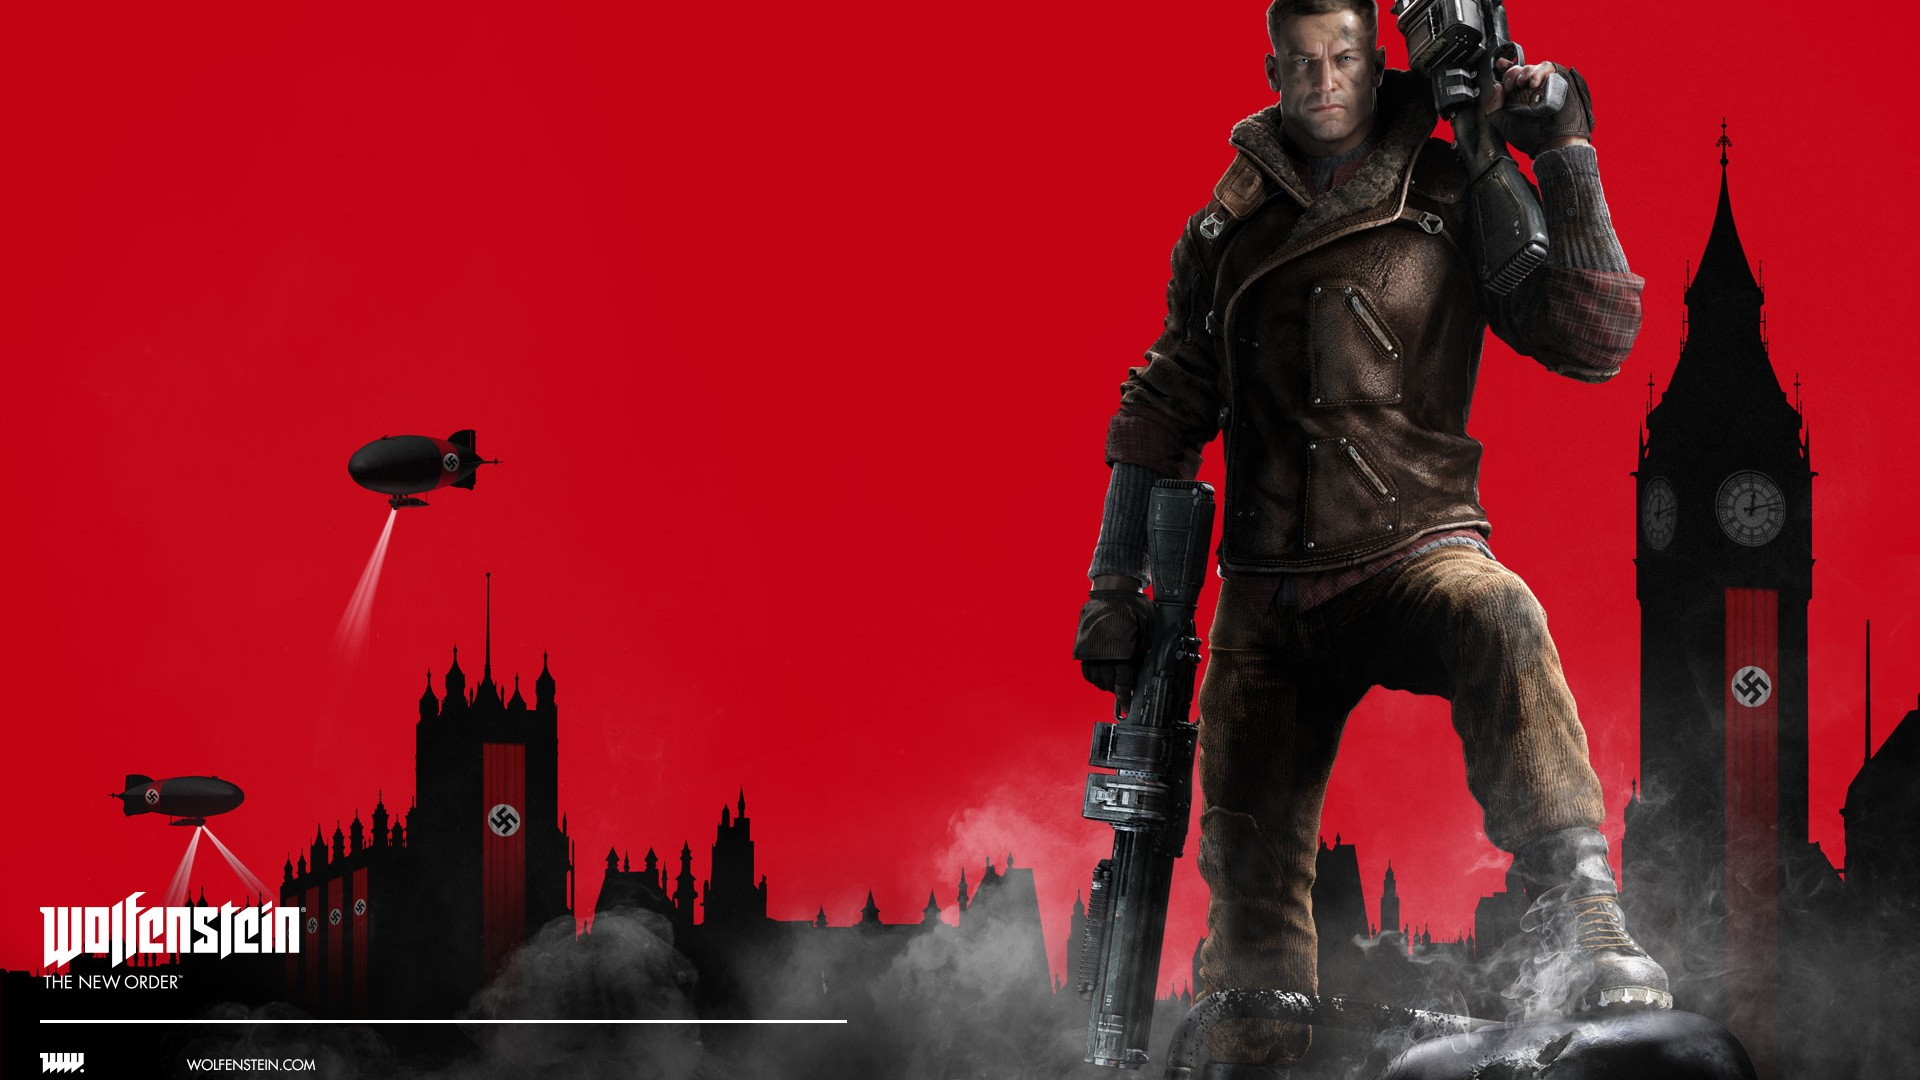 Latest Wallpaper Hd 3d Wolfenstein The New Order Video Game Wallpapers Hd